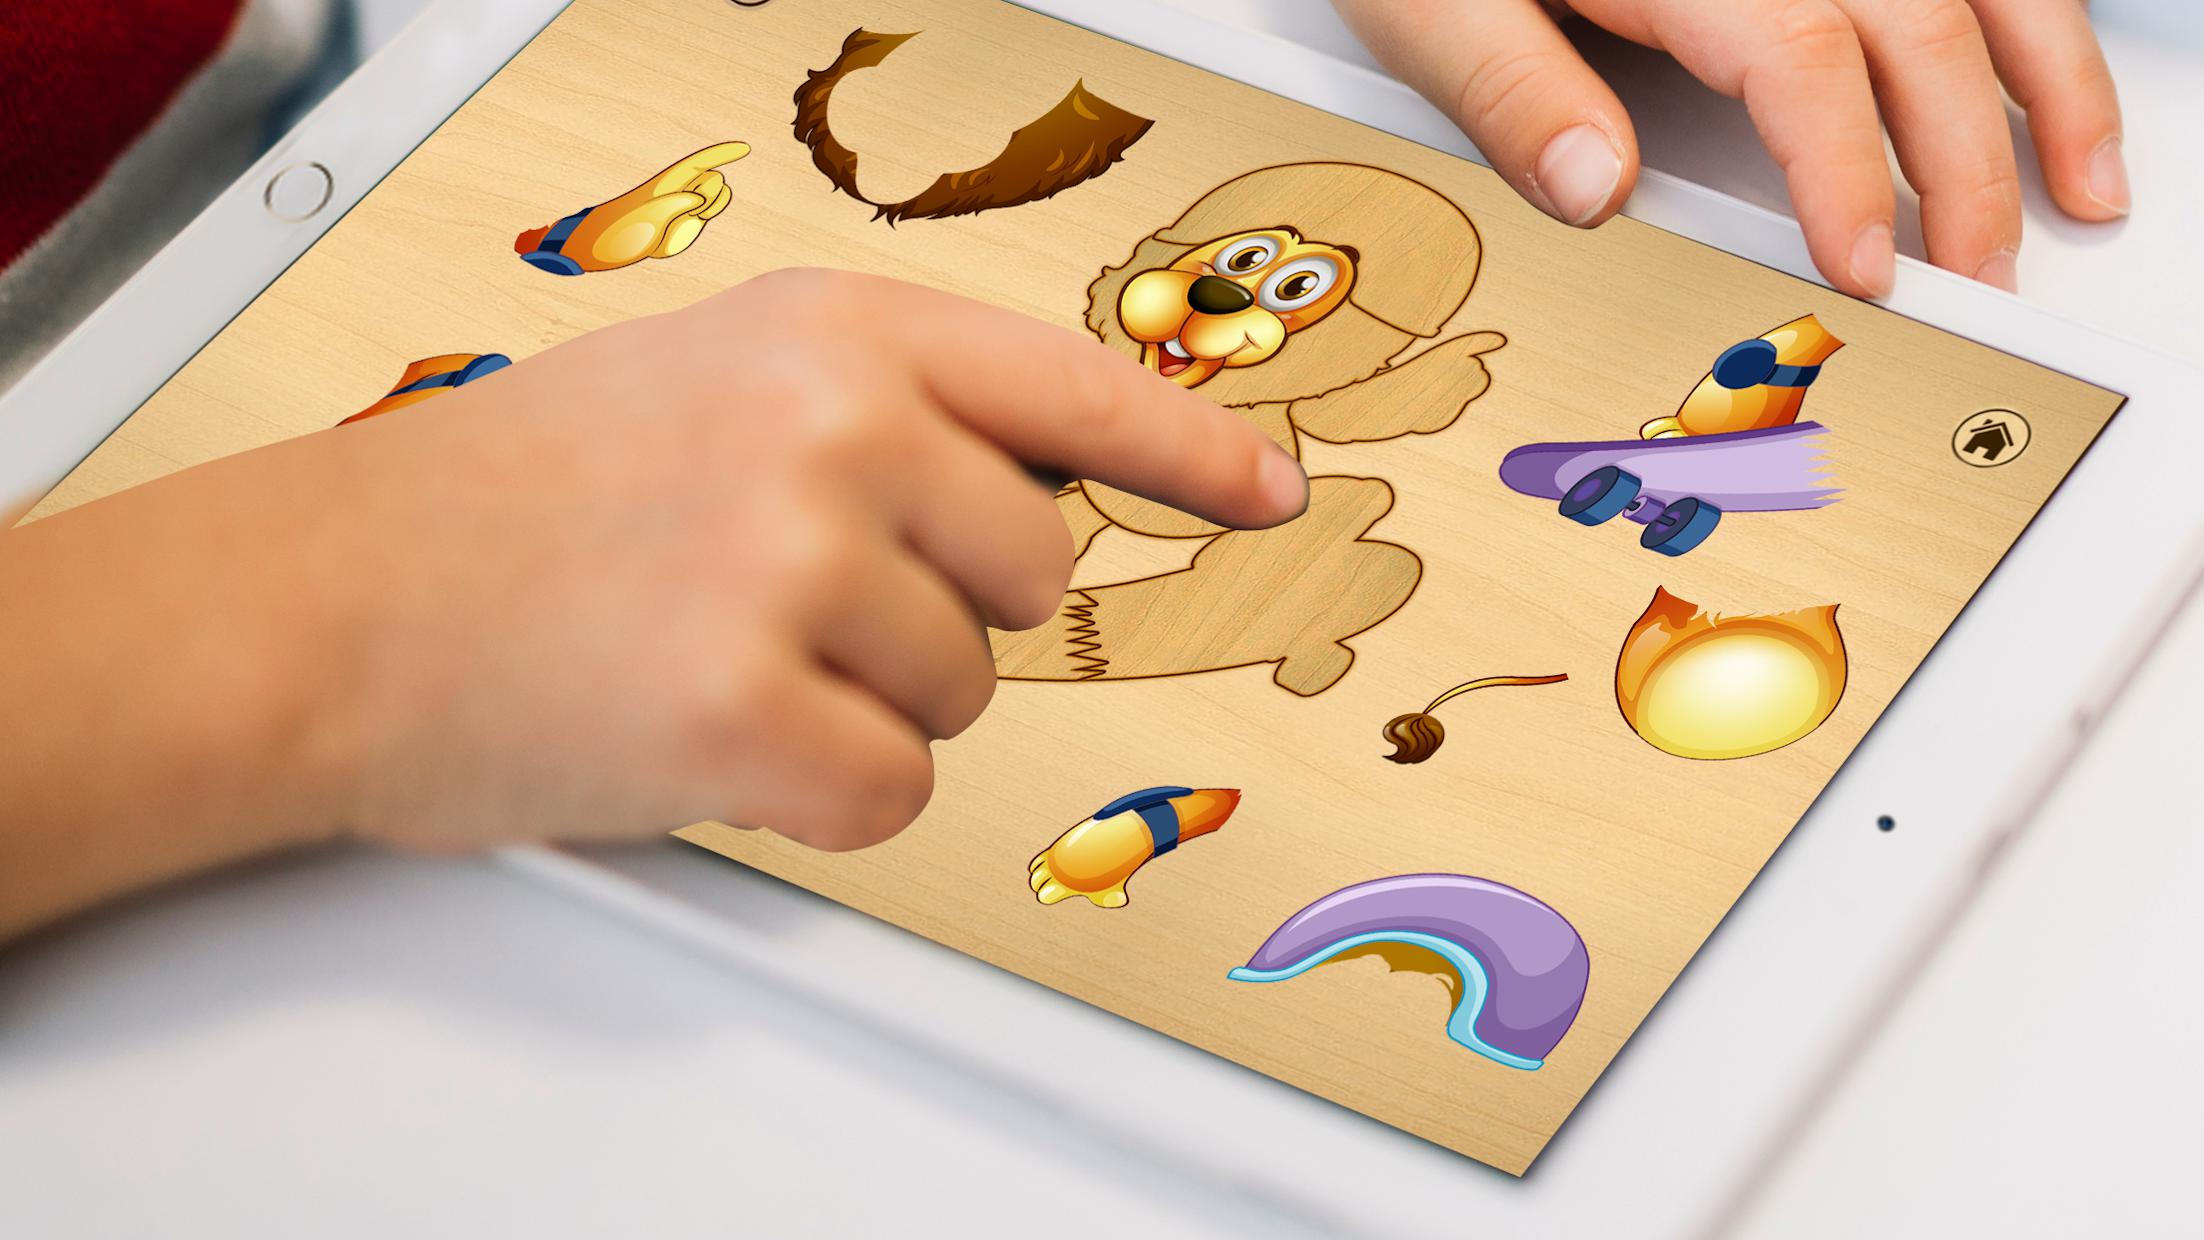 Kids Jigsaw Toddlers Puzzle Game 游戏截图1